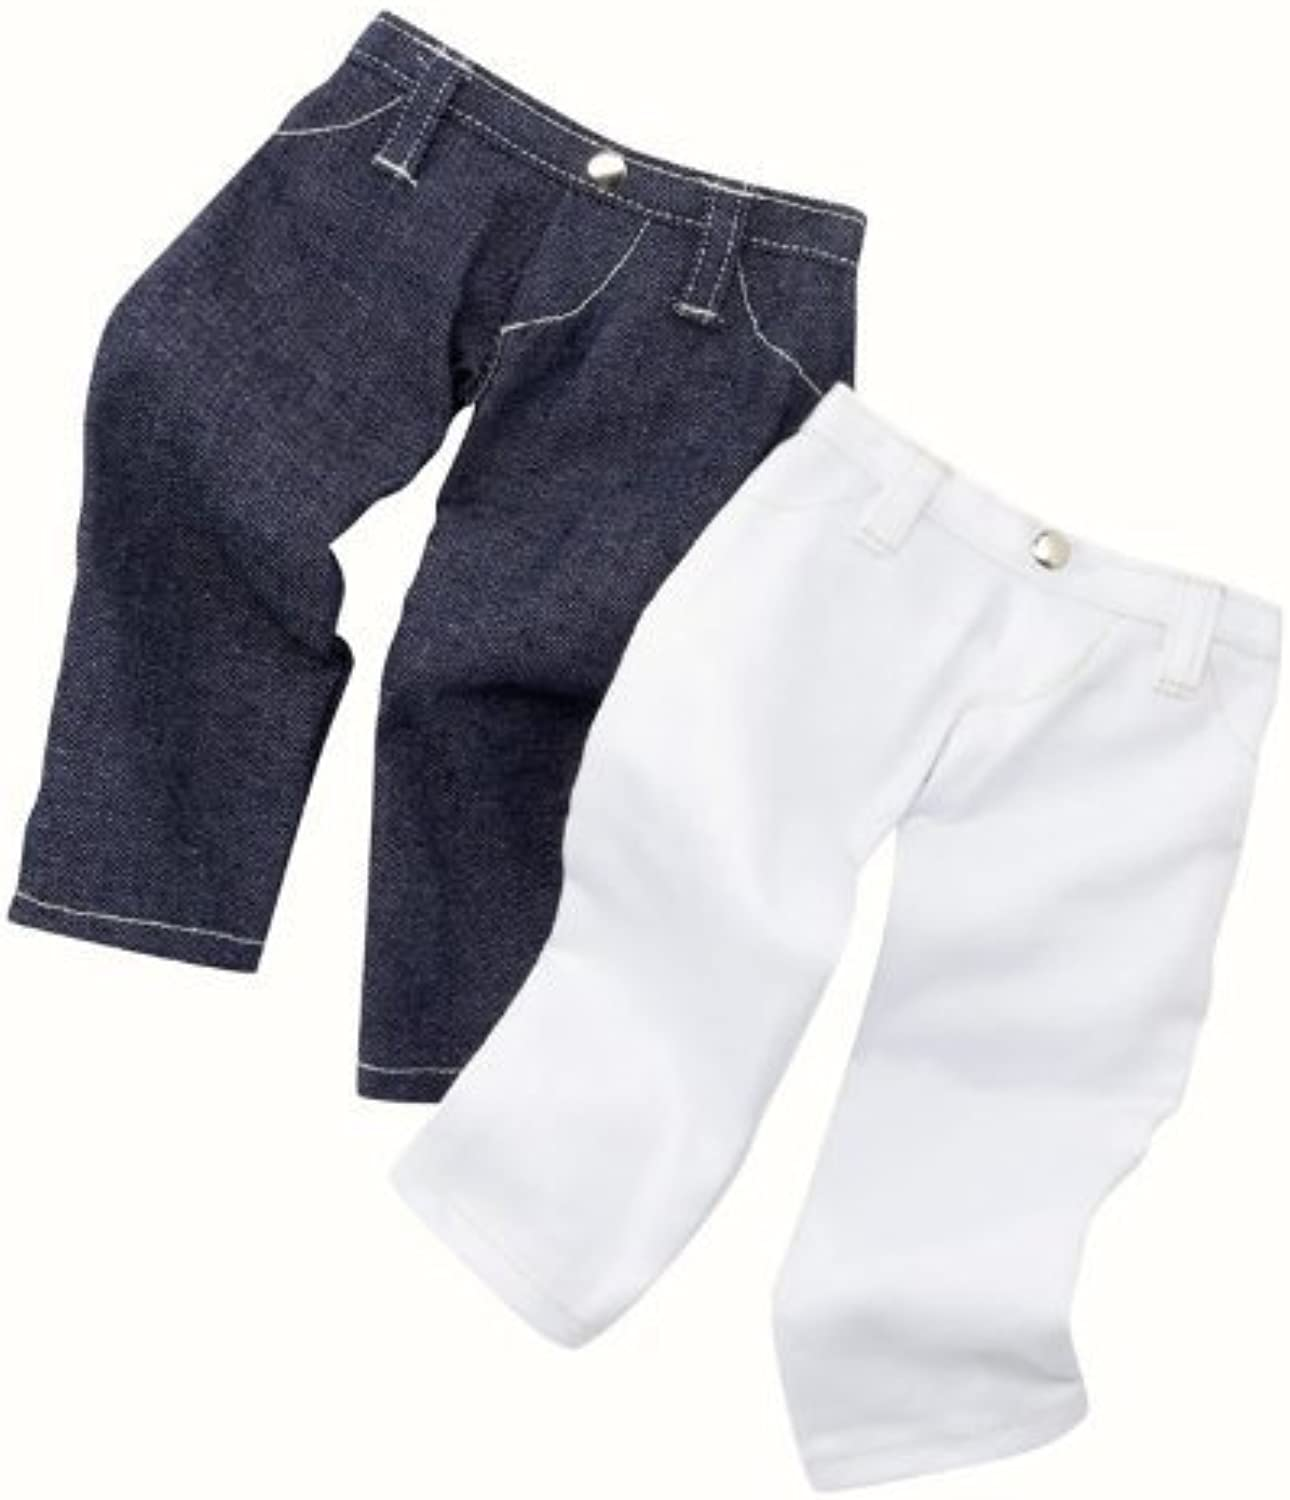 Gotz Two Pairs of Jeans for 18 inch dolls by Gotz